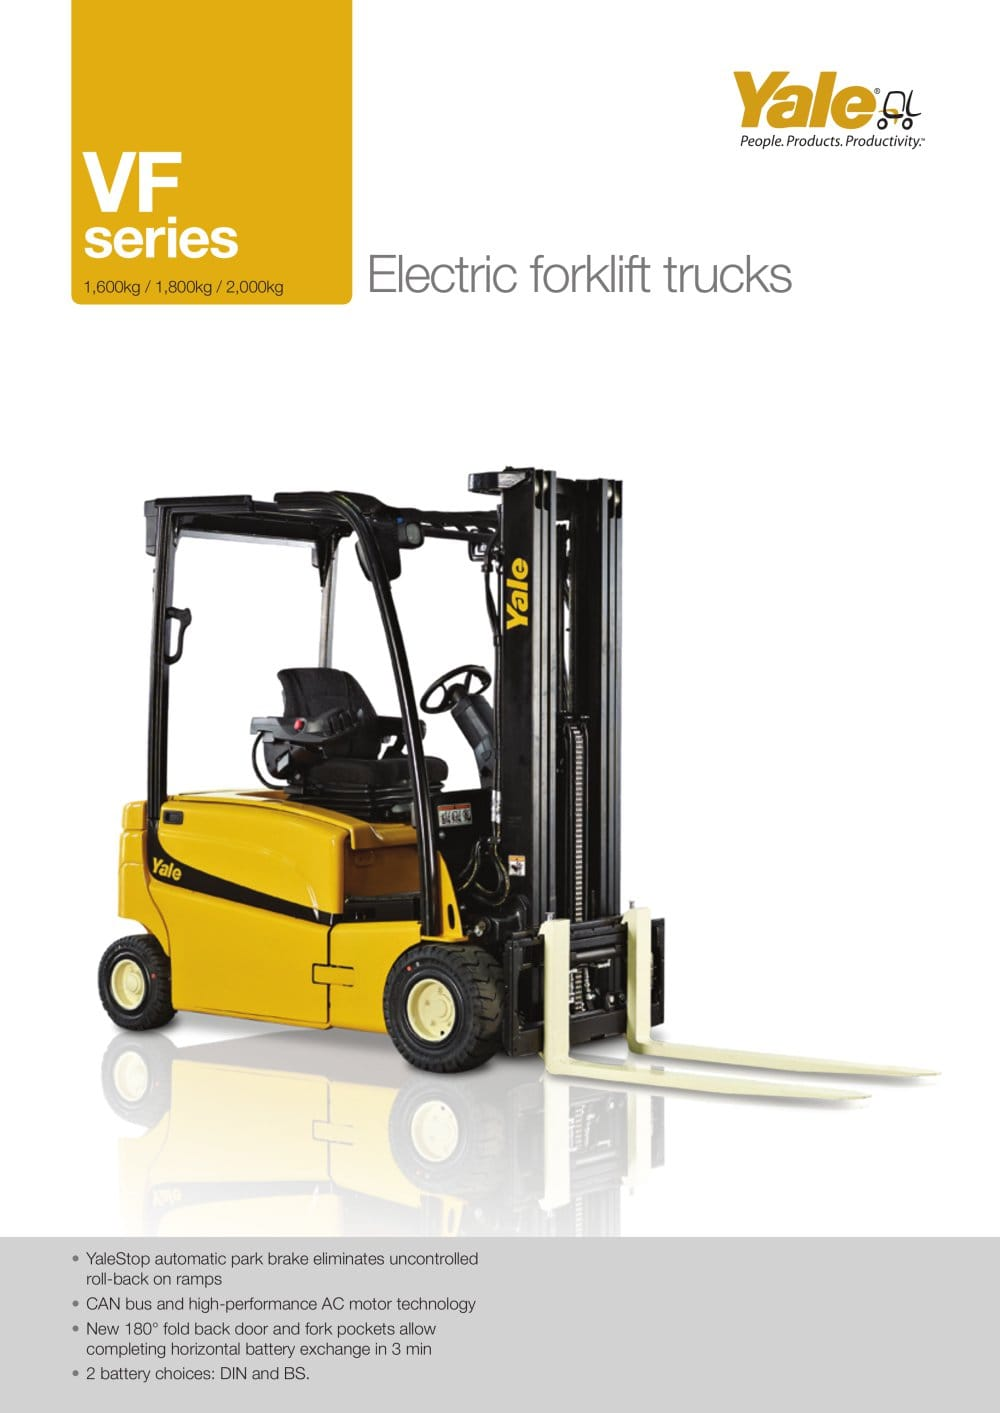 hight resolution of wiring yale diagram fork lift gdp080dncge